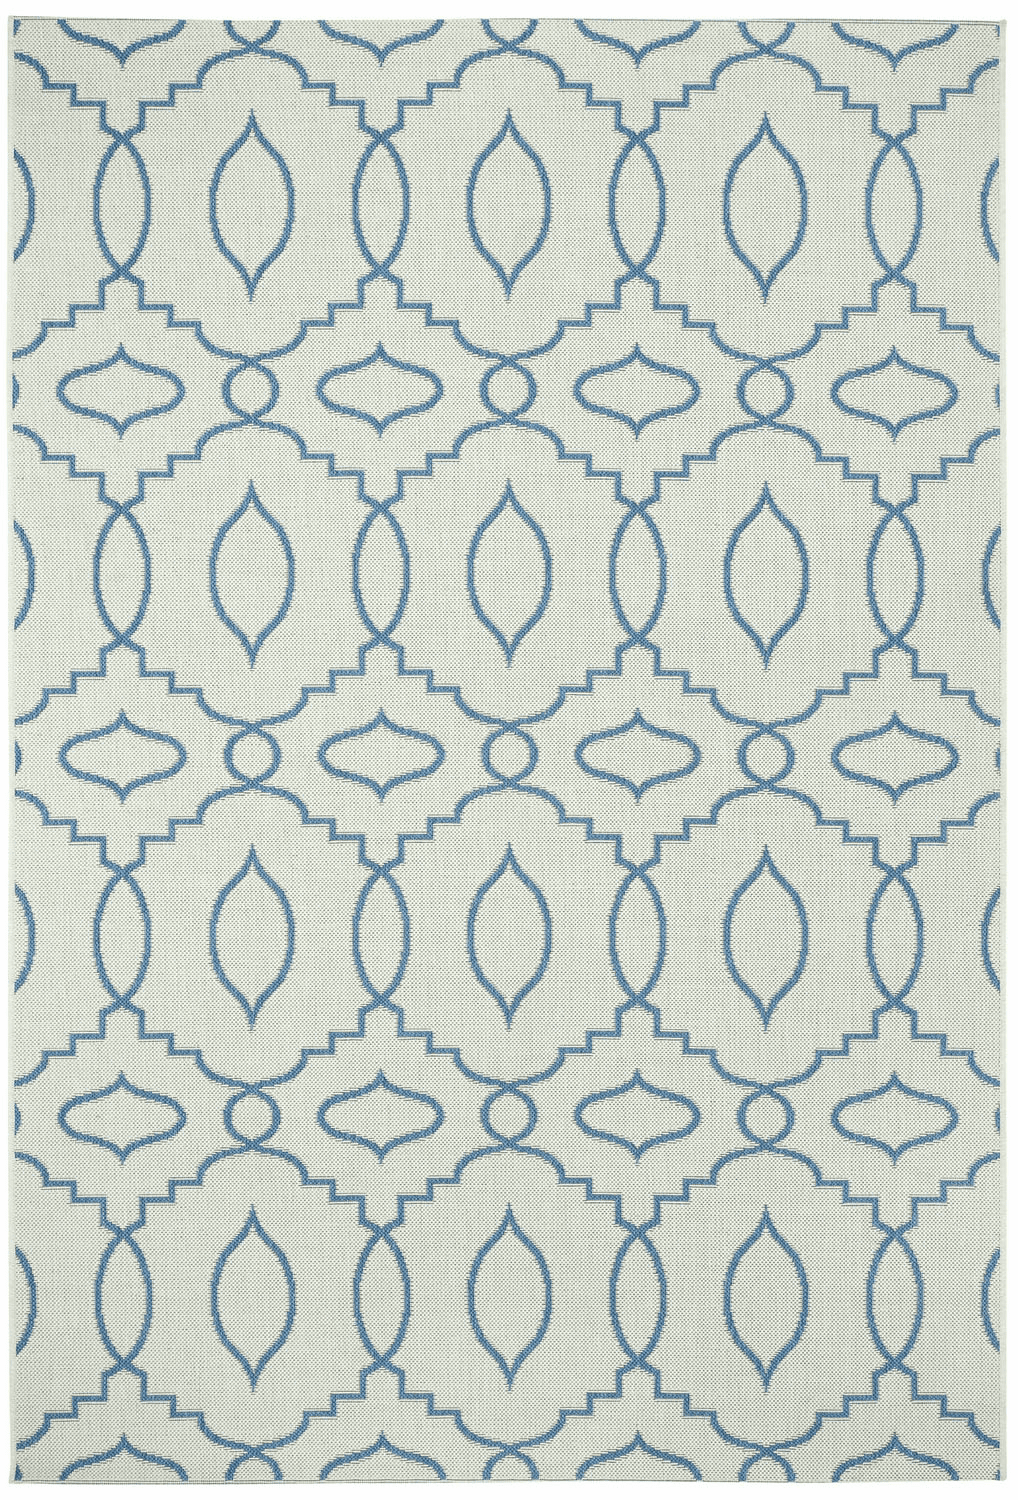 Machine Woven Blueberry Rug